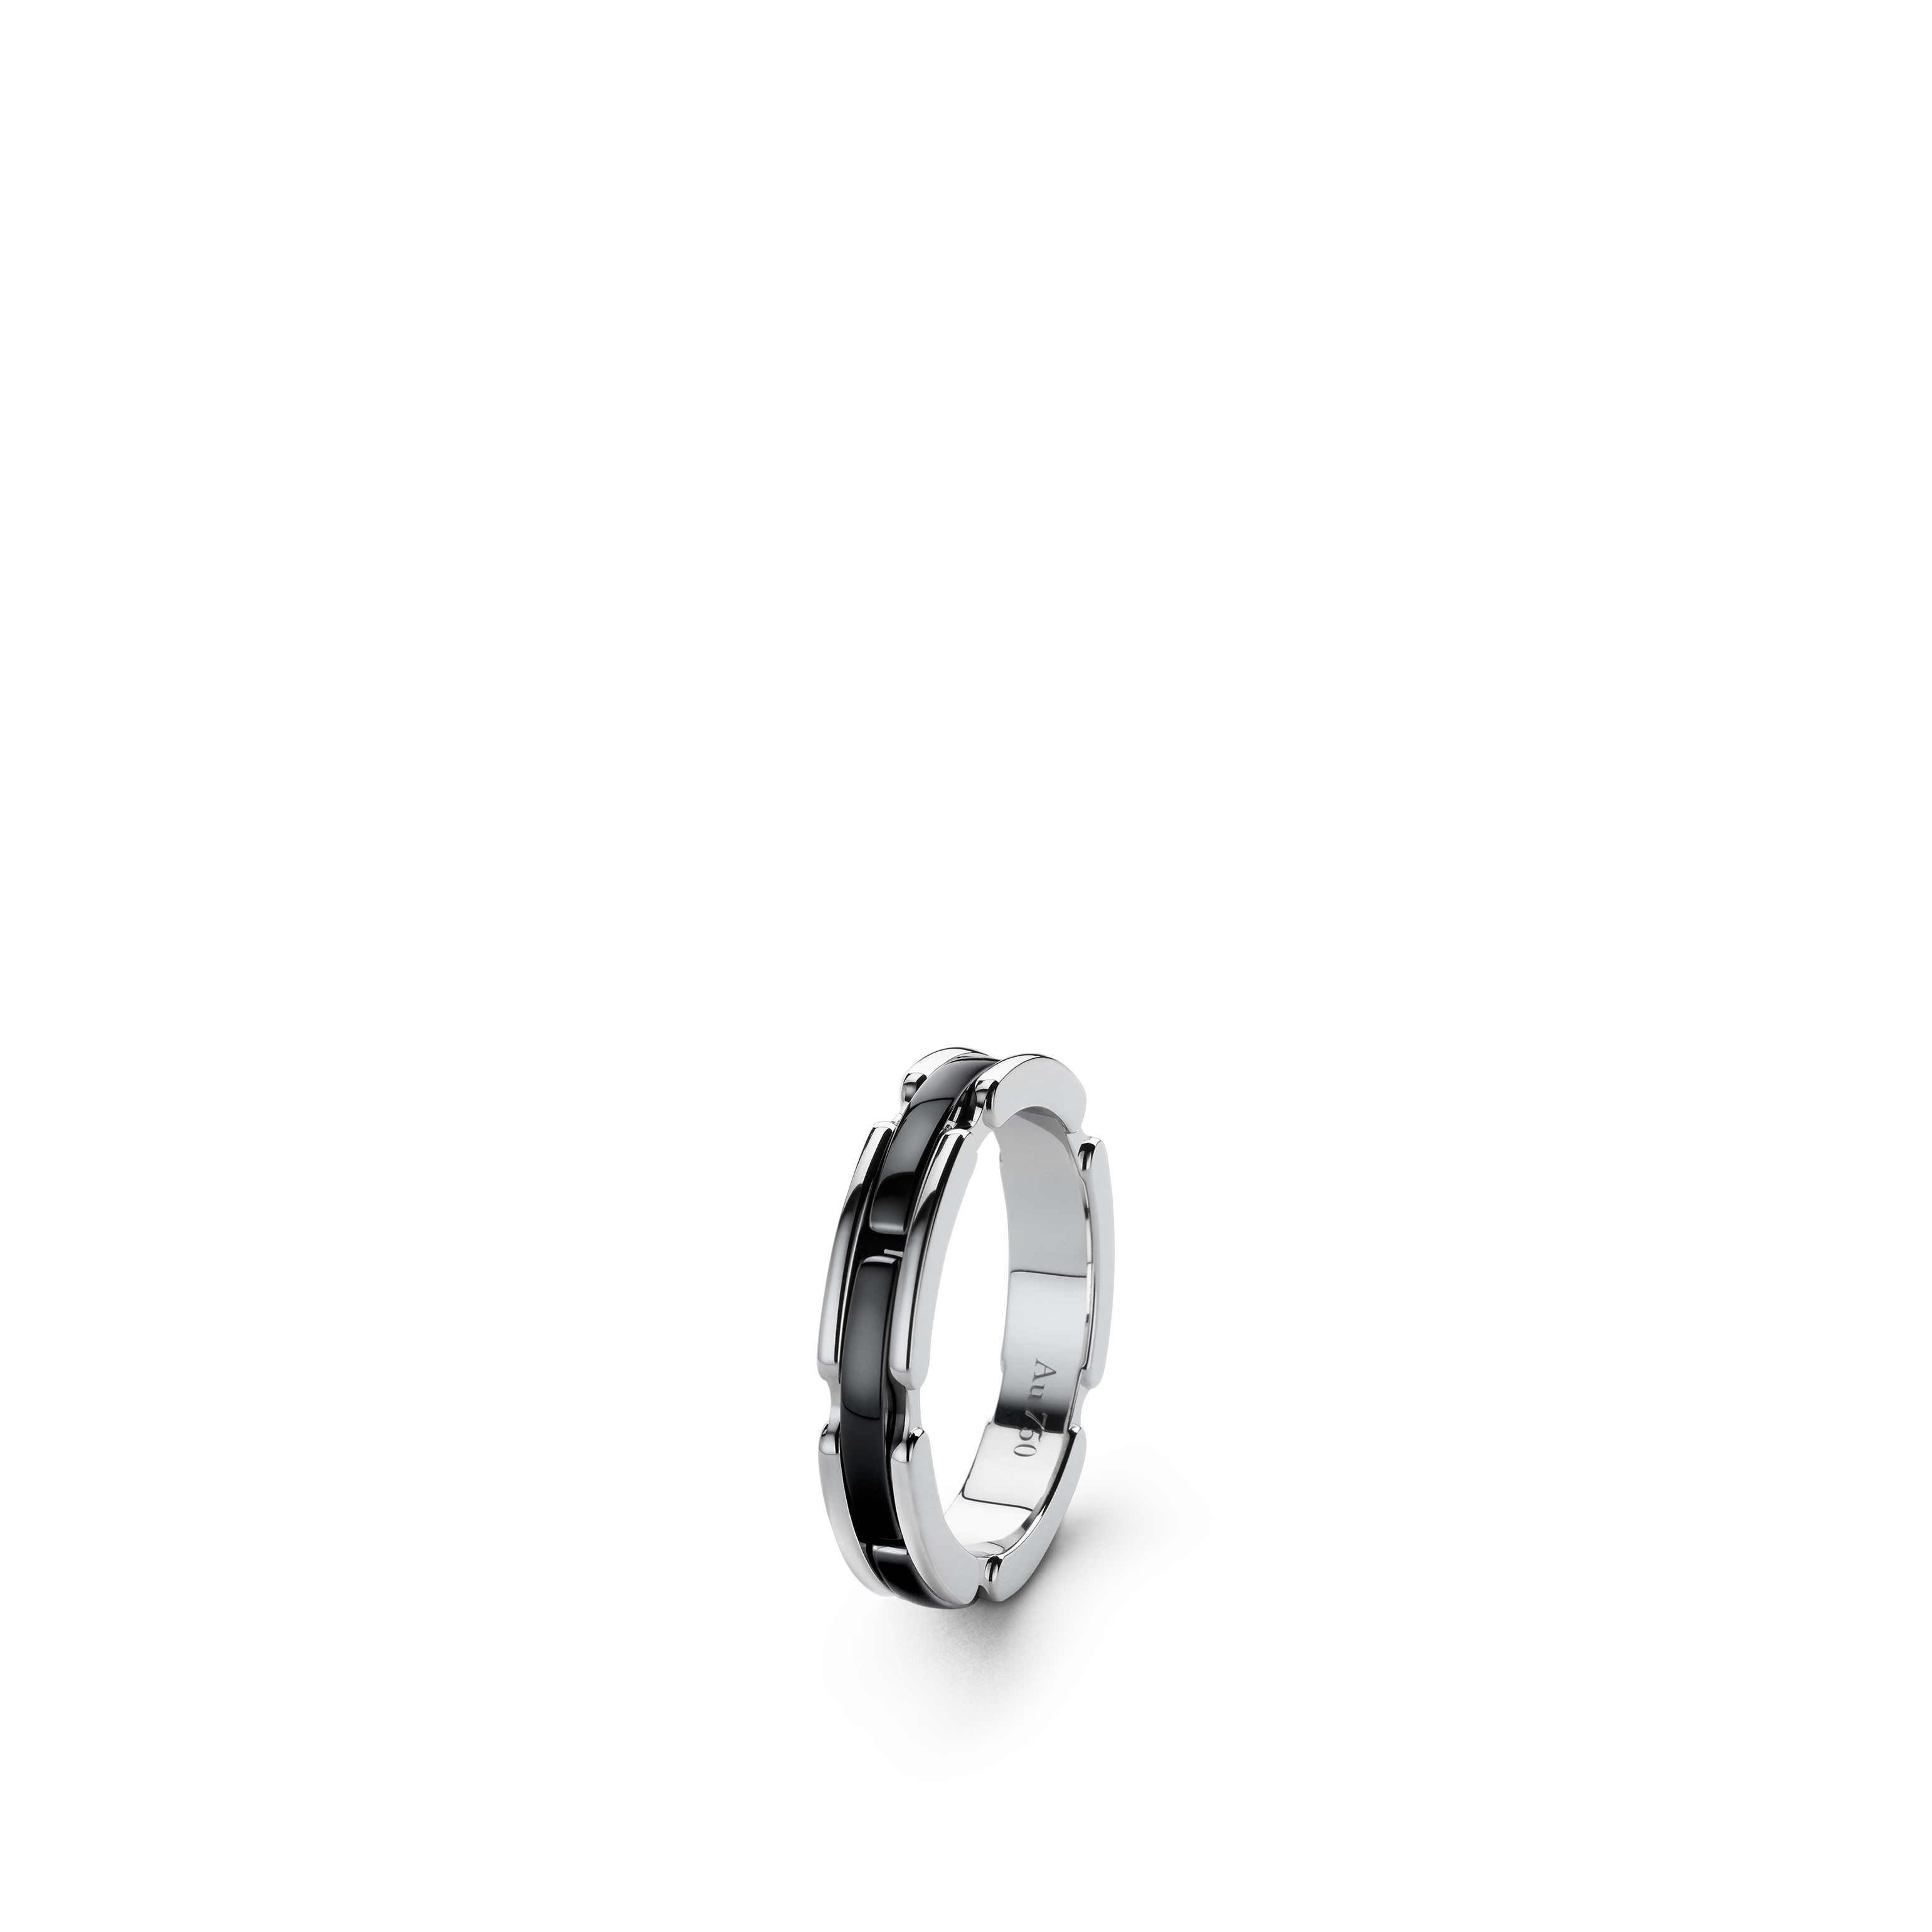 Ultra ring - Small version, 18K white gold, black ceramic - CHANEL - Default view - see standard sized version